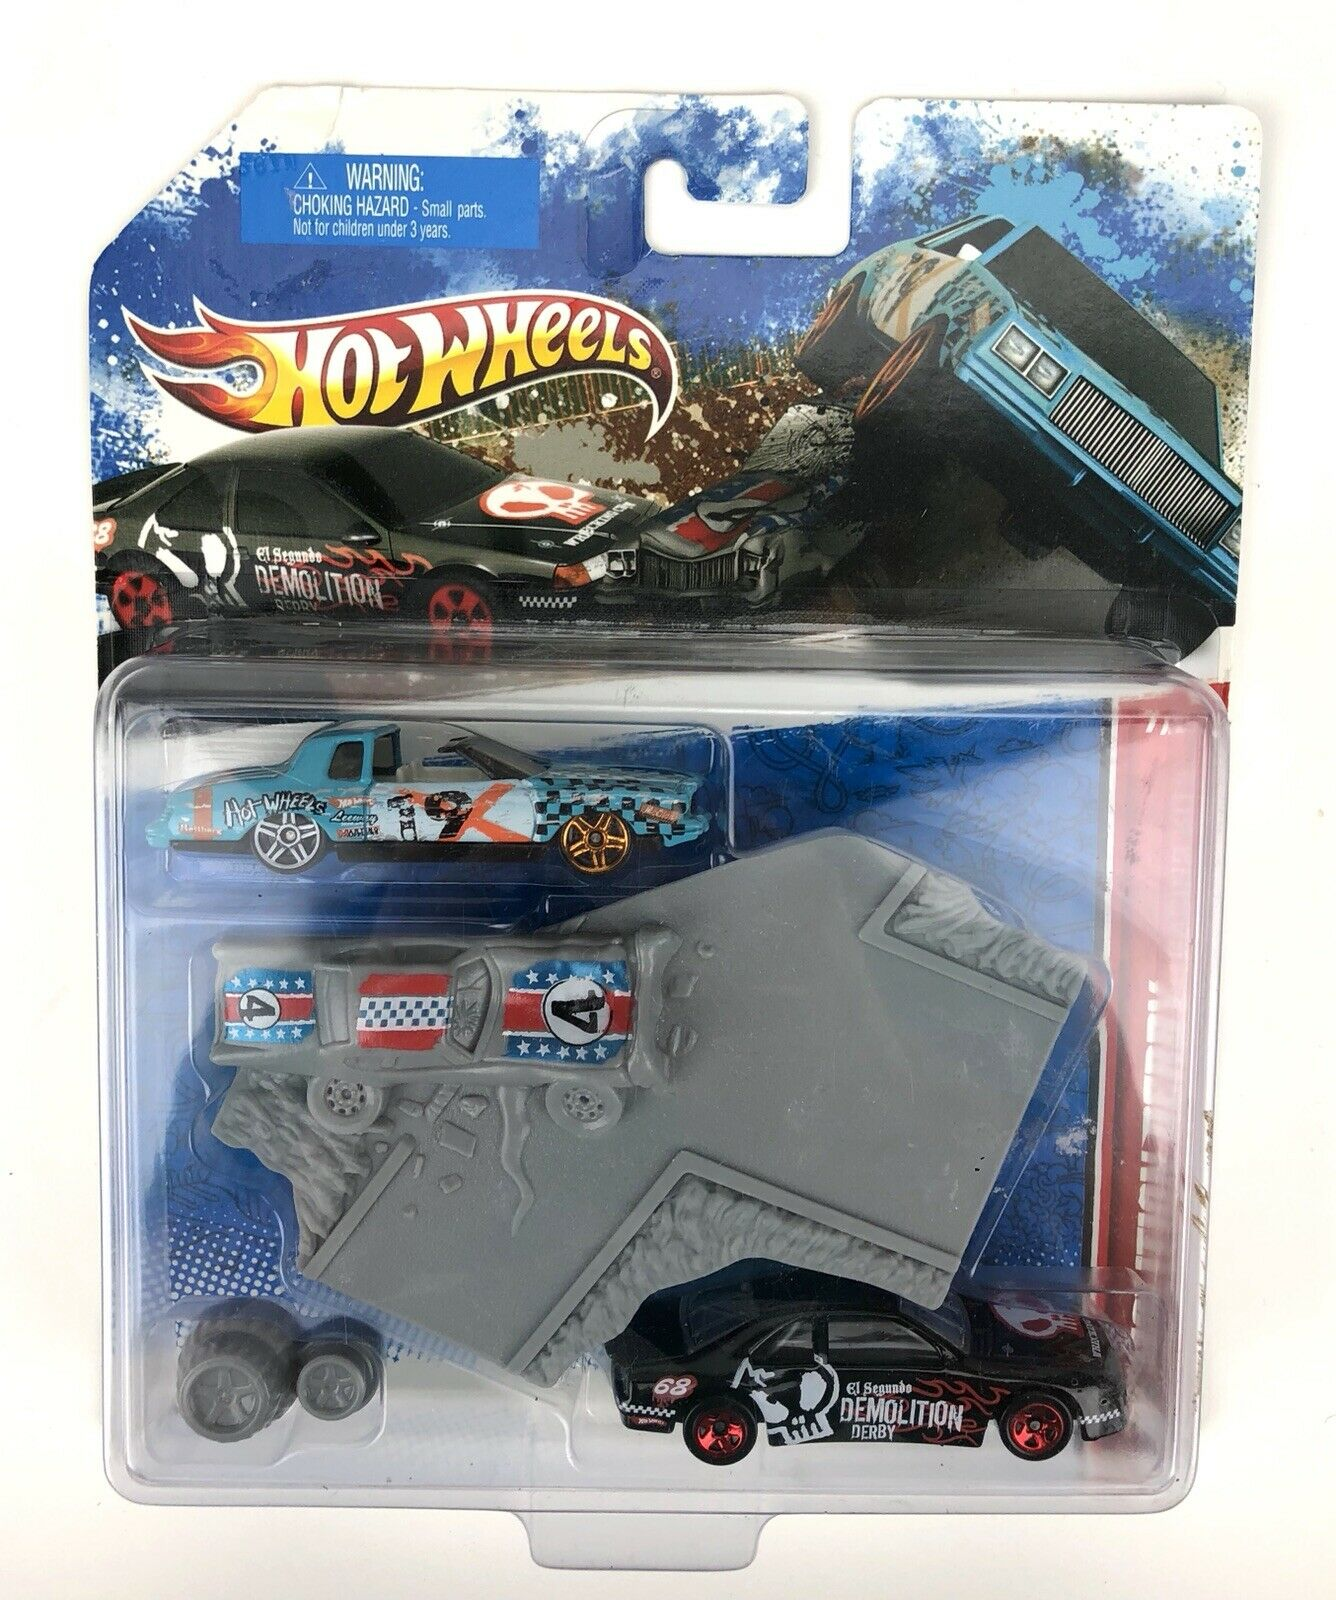 RARE Hot Wheels Racing Kit SNOW Race Set of 12 Demolition Derby